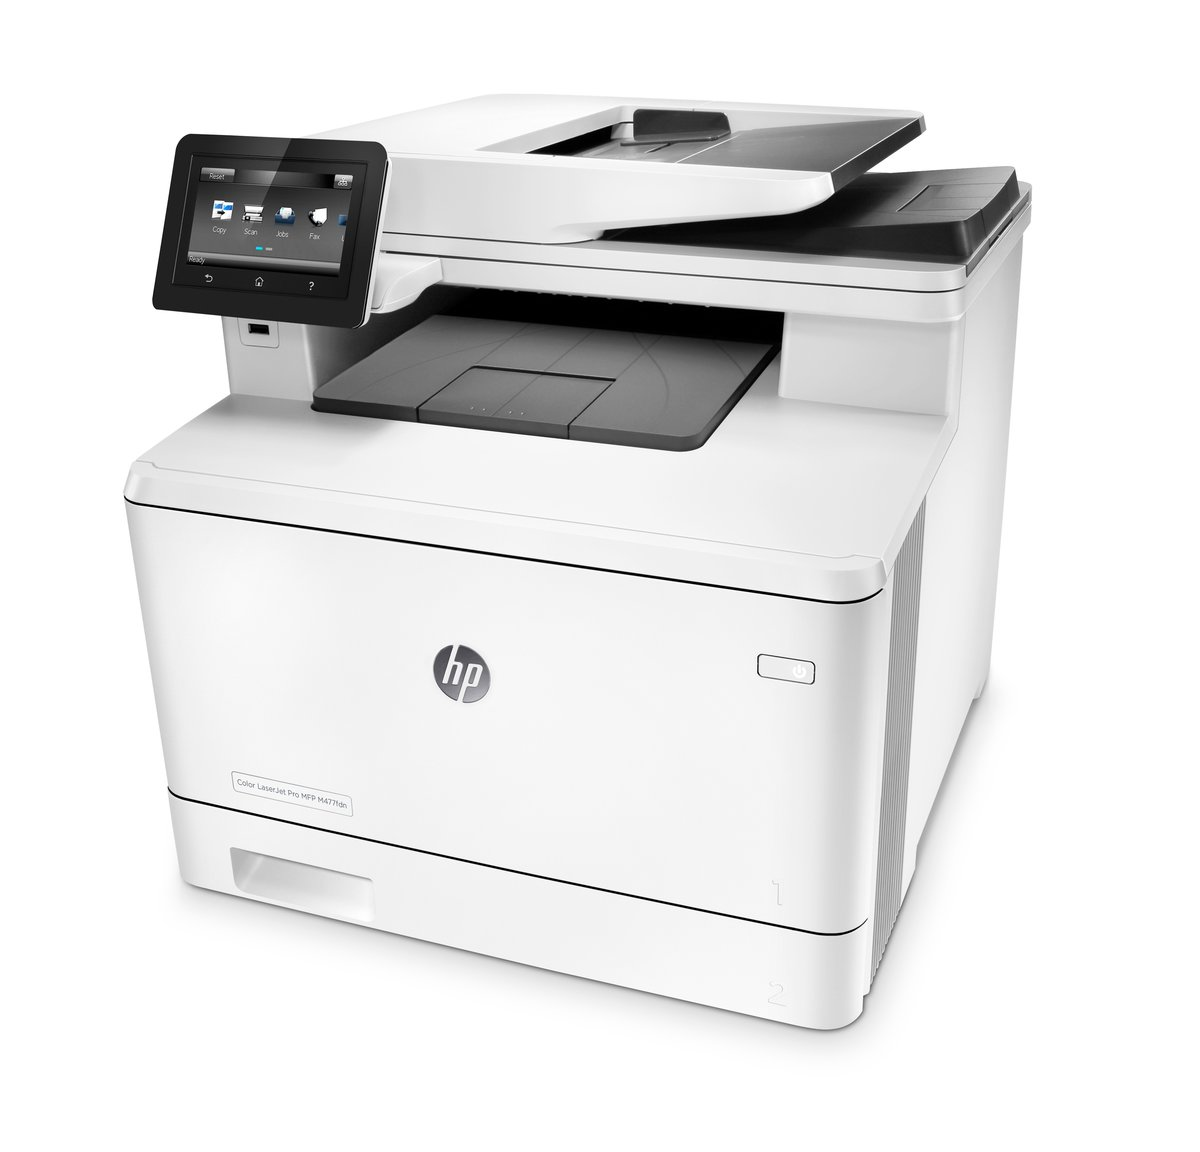 HP LaserJet Pro Color Laser All In One Printer Copier Scanner Fax ...